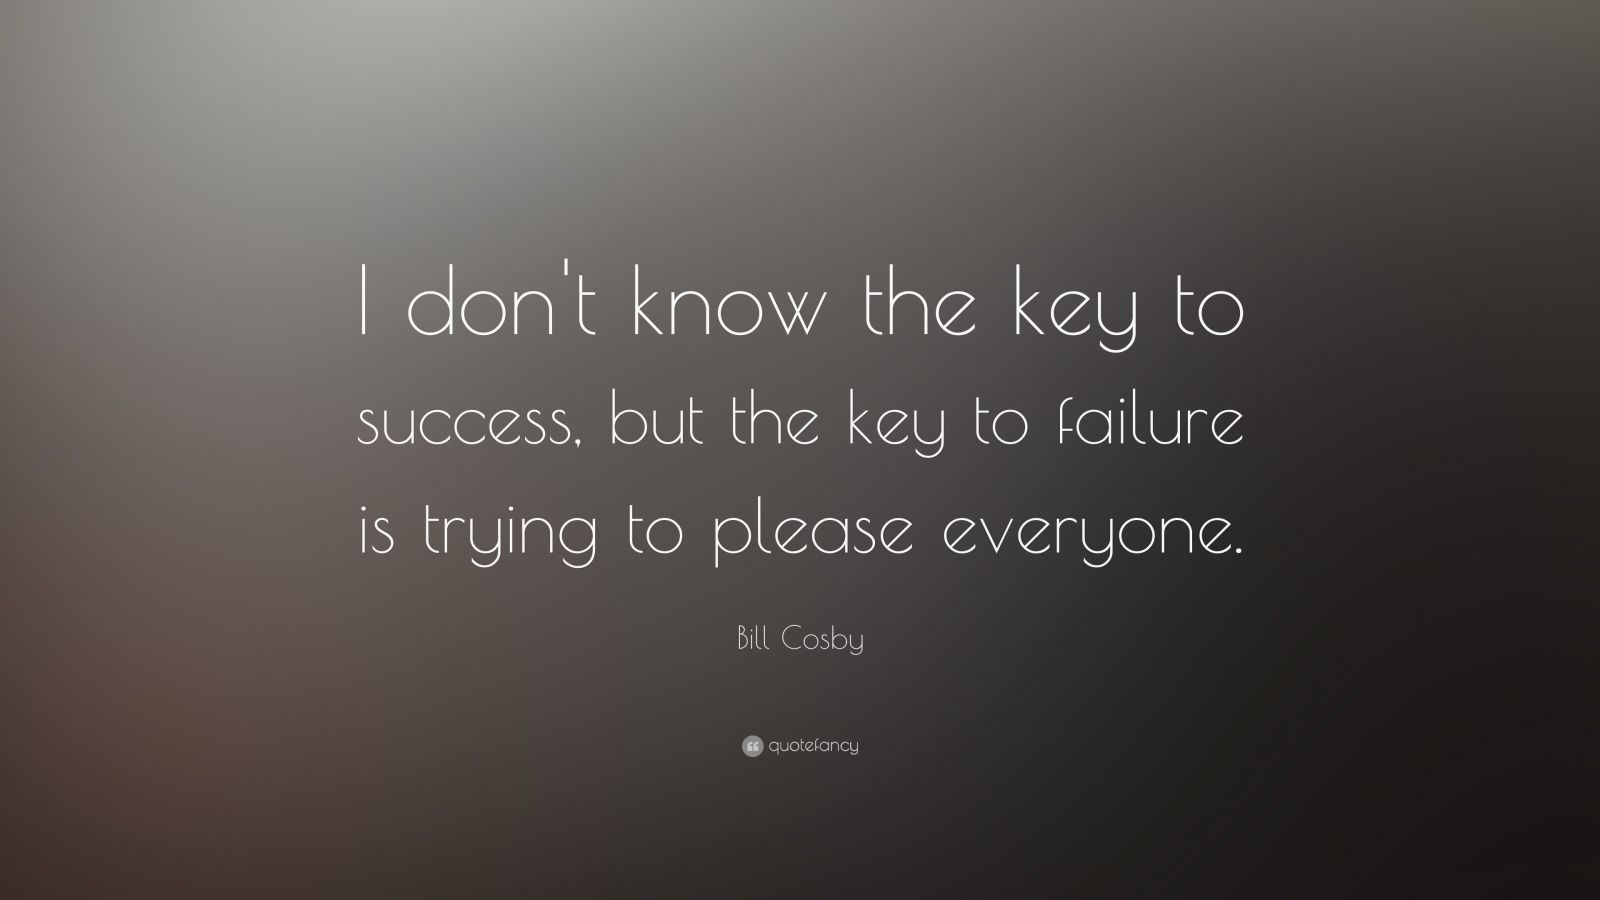 Dalai Lama Quotes Wallpapers Bill Cosby Quote I Don T Know The Key To Success But